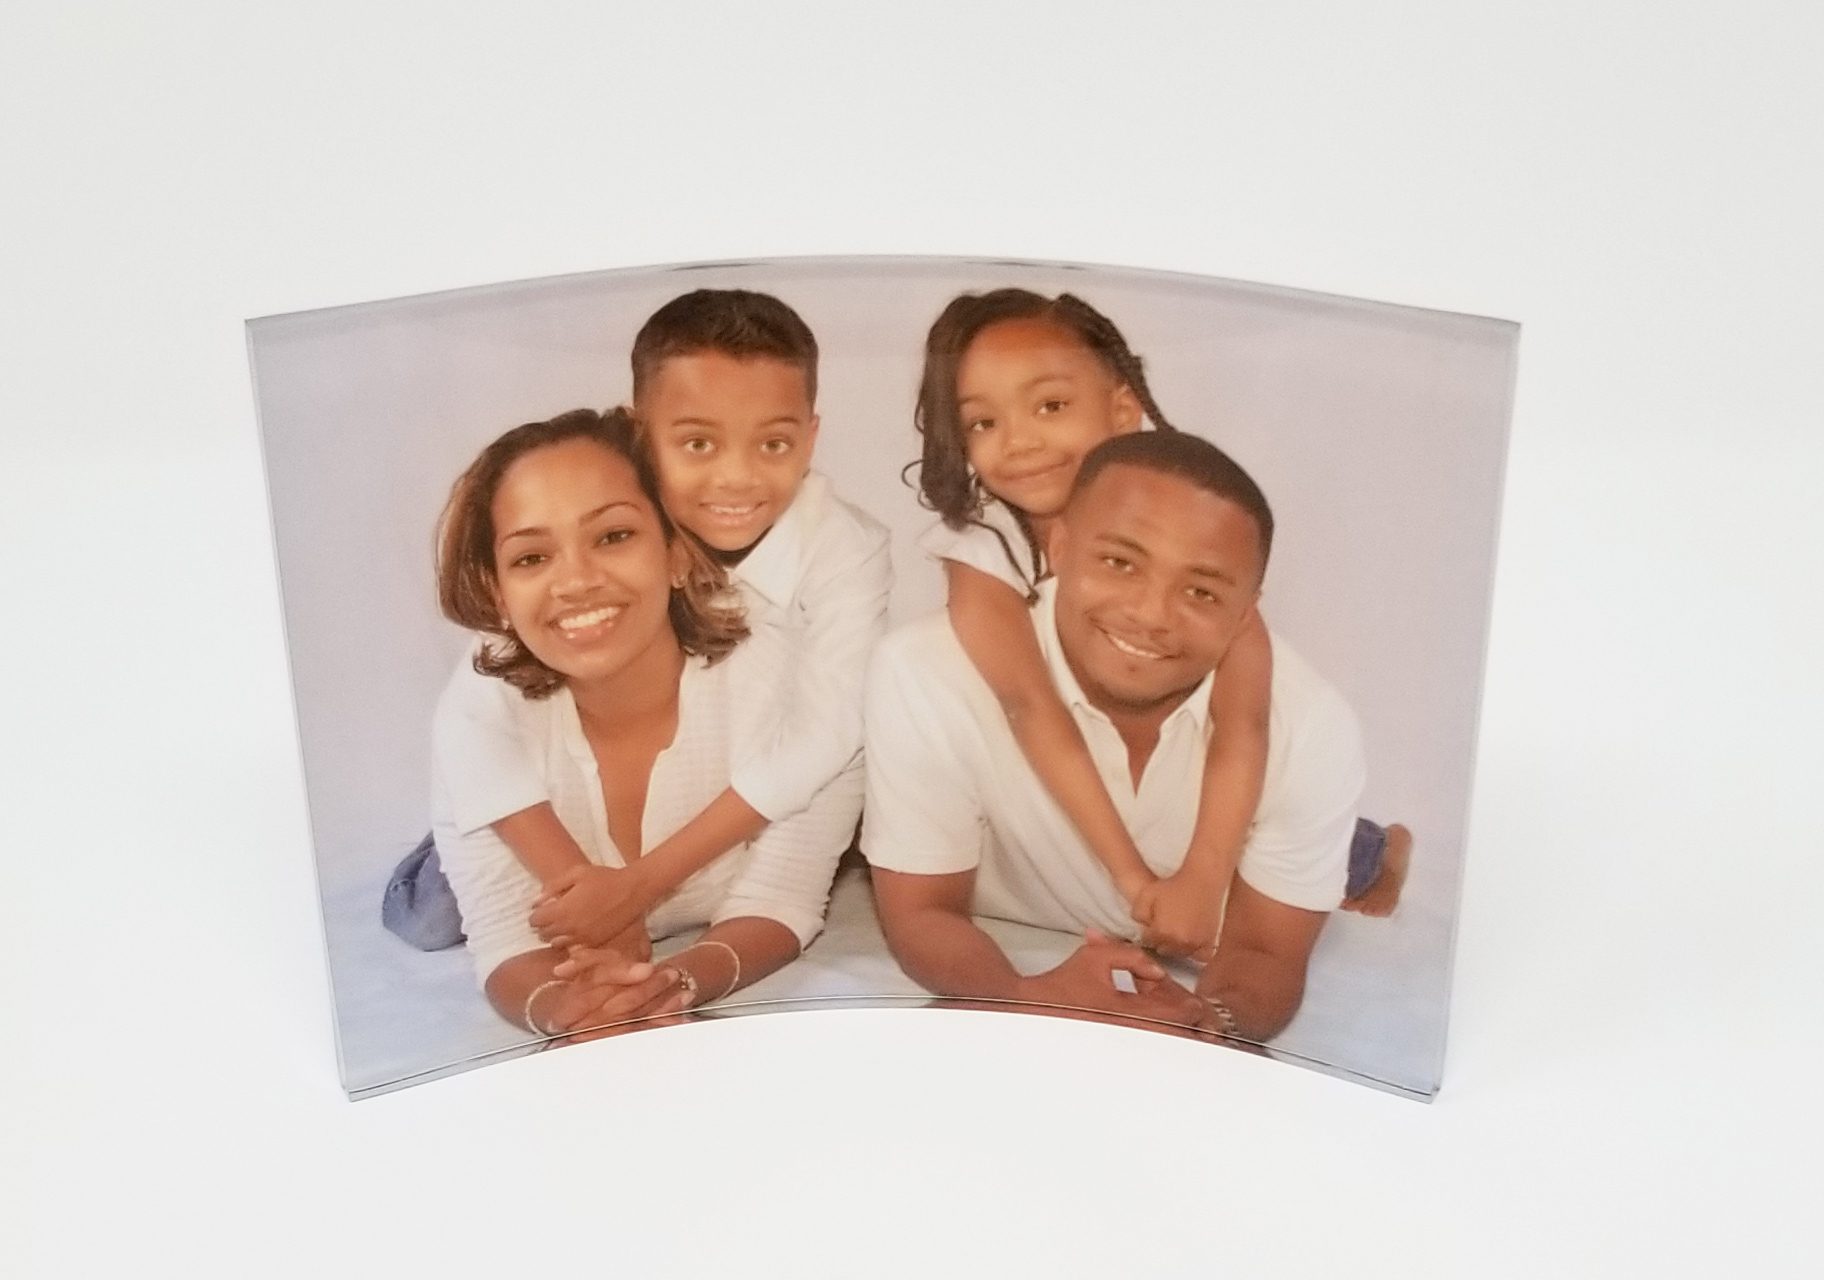 "Curved Clear Acrylic, 5"" x 7"" x .22"" with Square Corners. Colors on this durable acrylic are vibrant and crisp. Light enhances the window effect and the image is beautiful from the front or back."